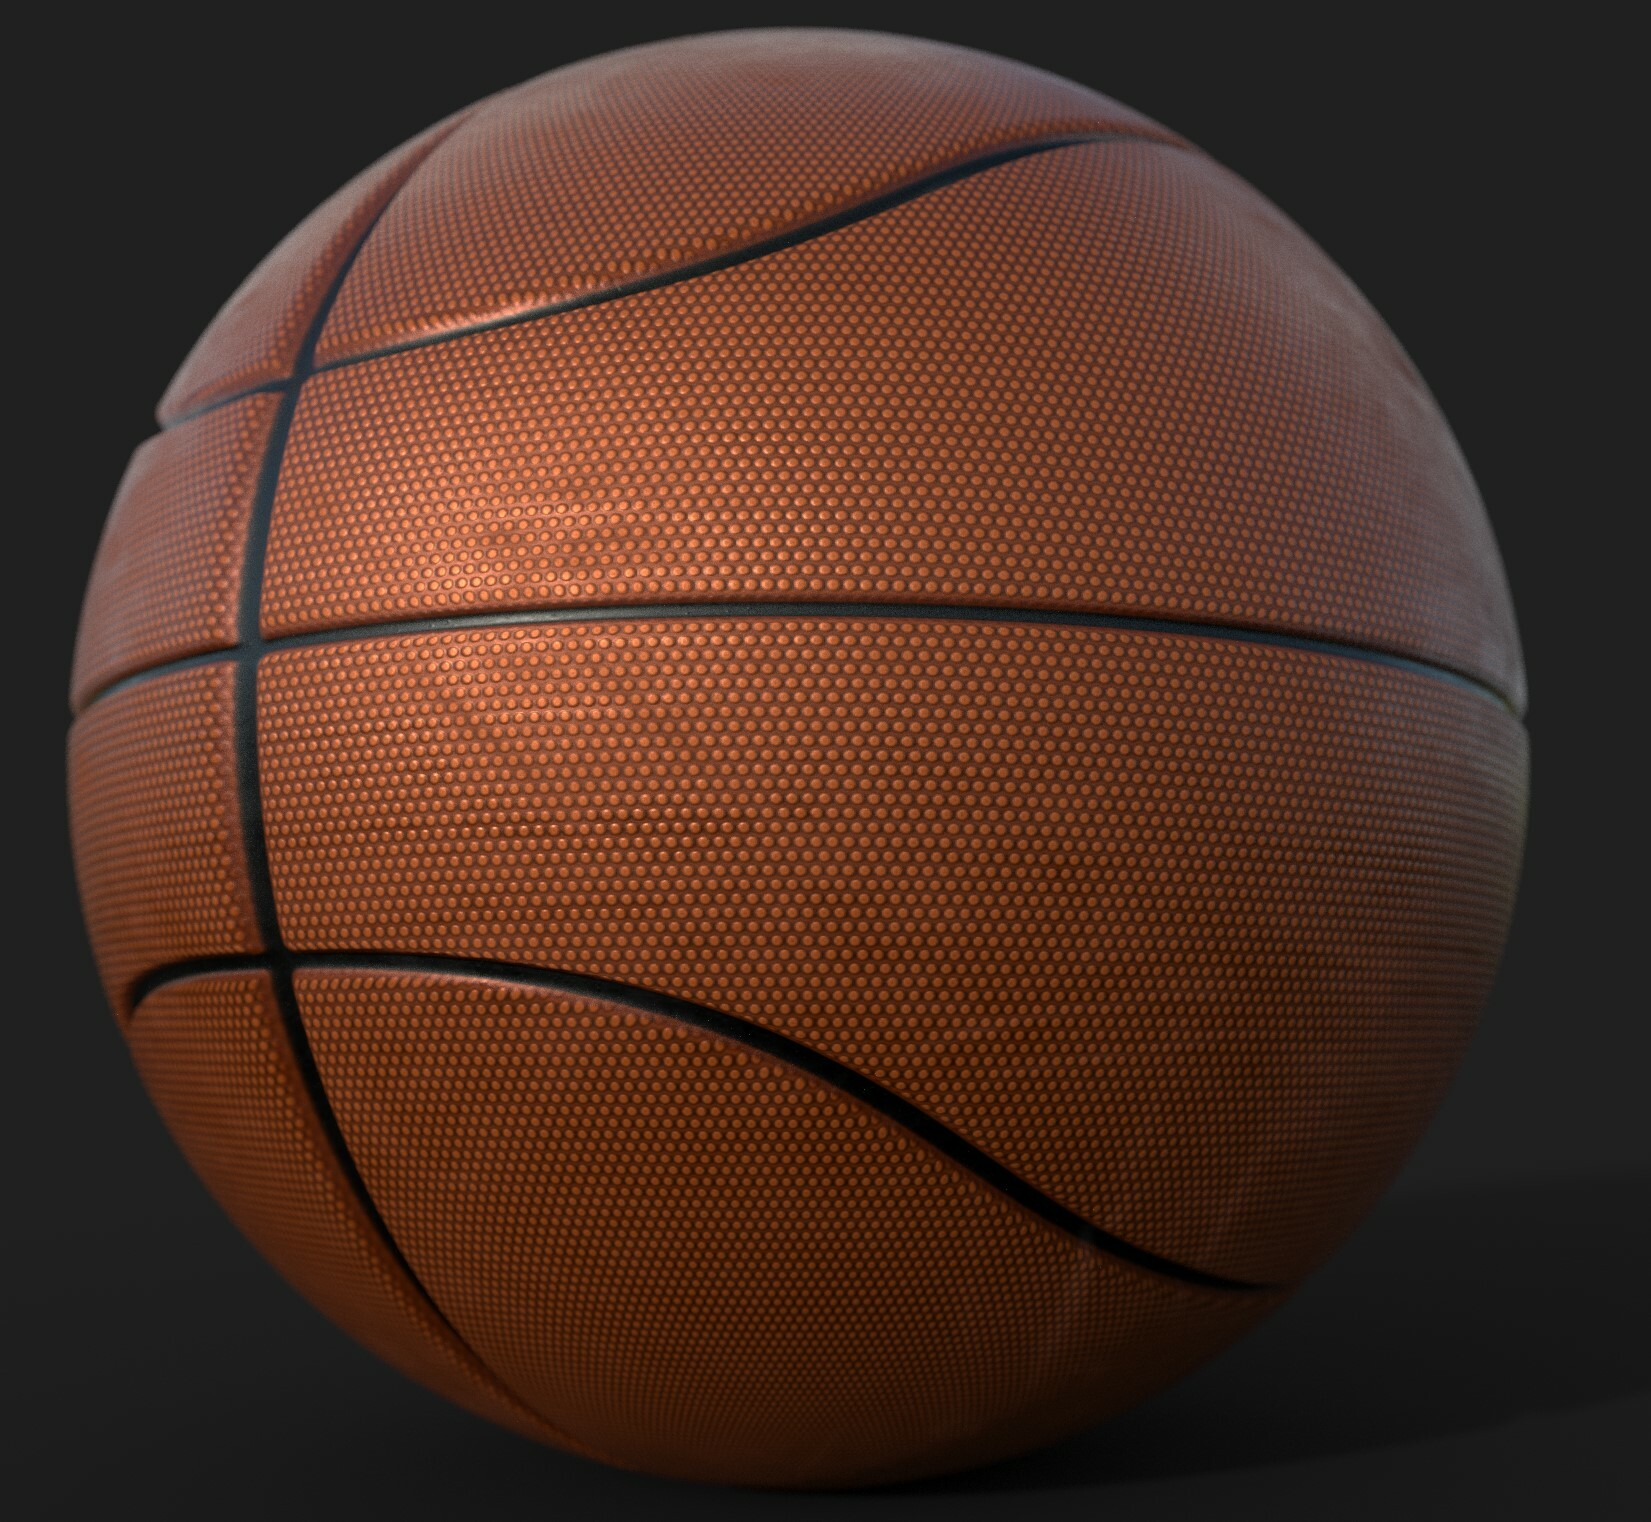 Procedural BasketBall  (And Tennis Ball) - Substance Designer